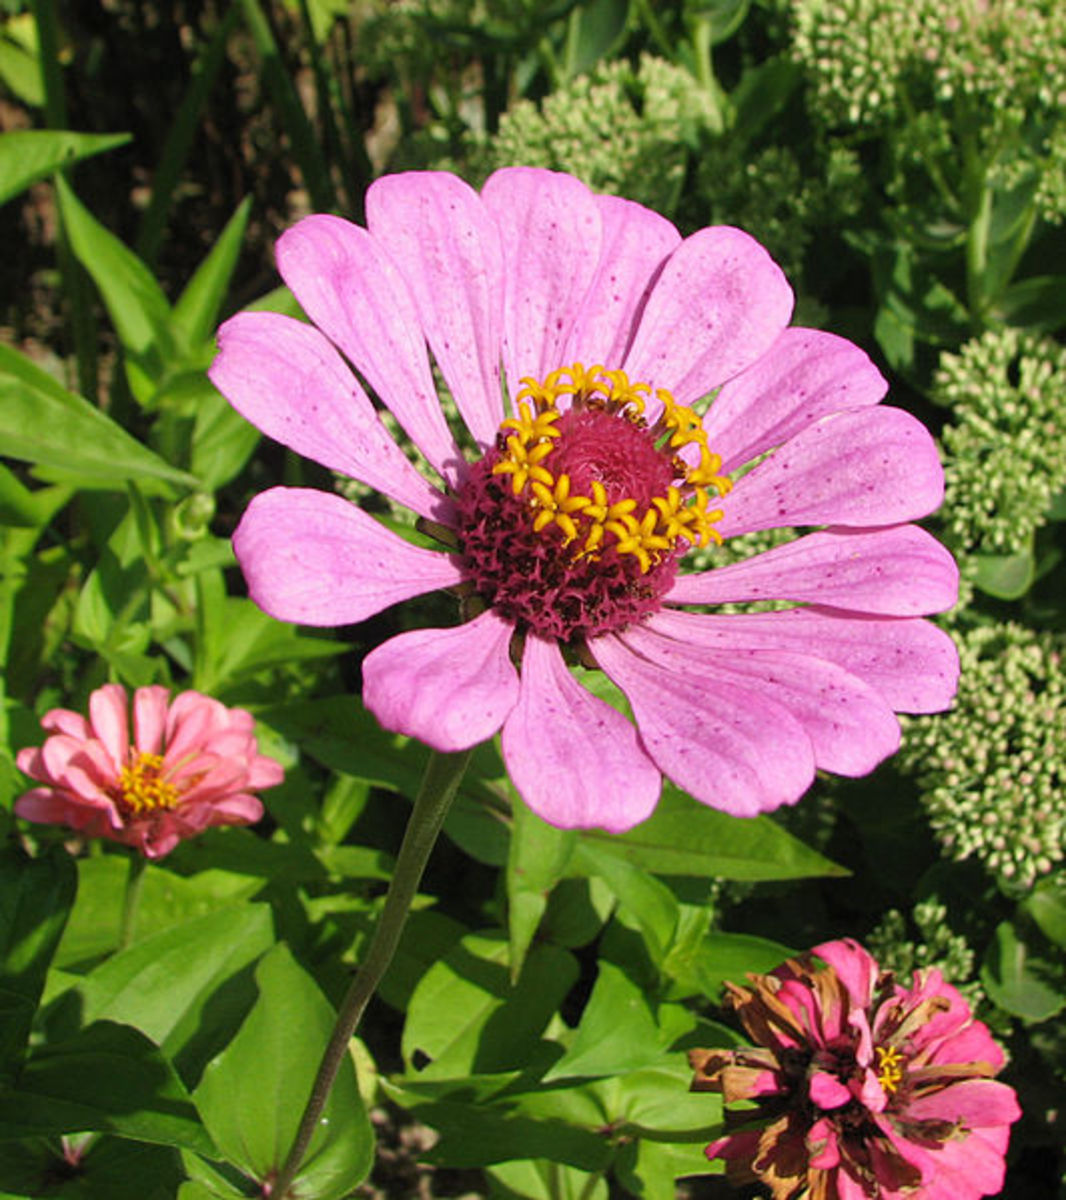 Zinnias are beautiful flowers that are easy to grow from seed.